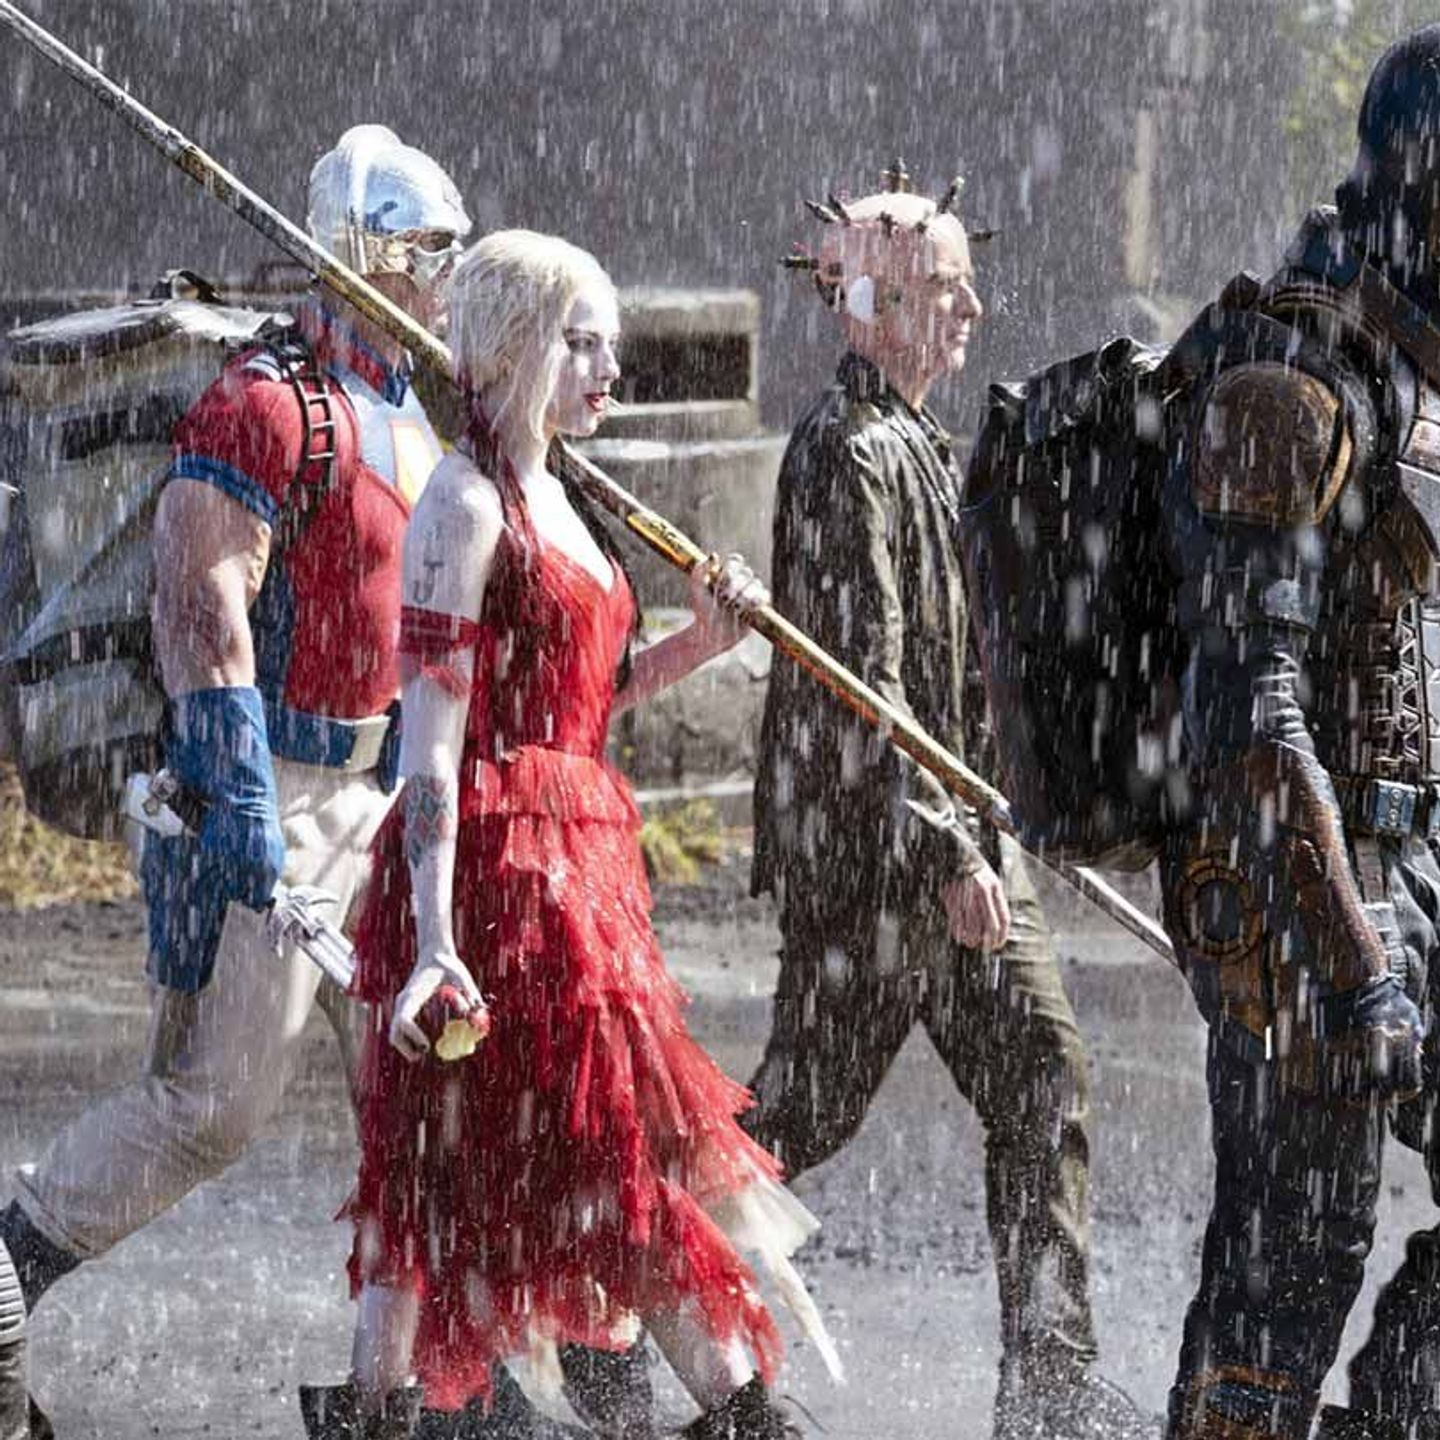 The Suicide Squad: Watch or Not?